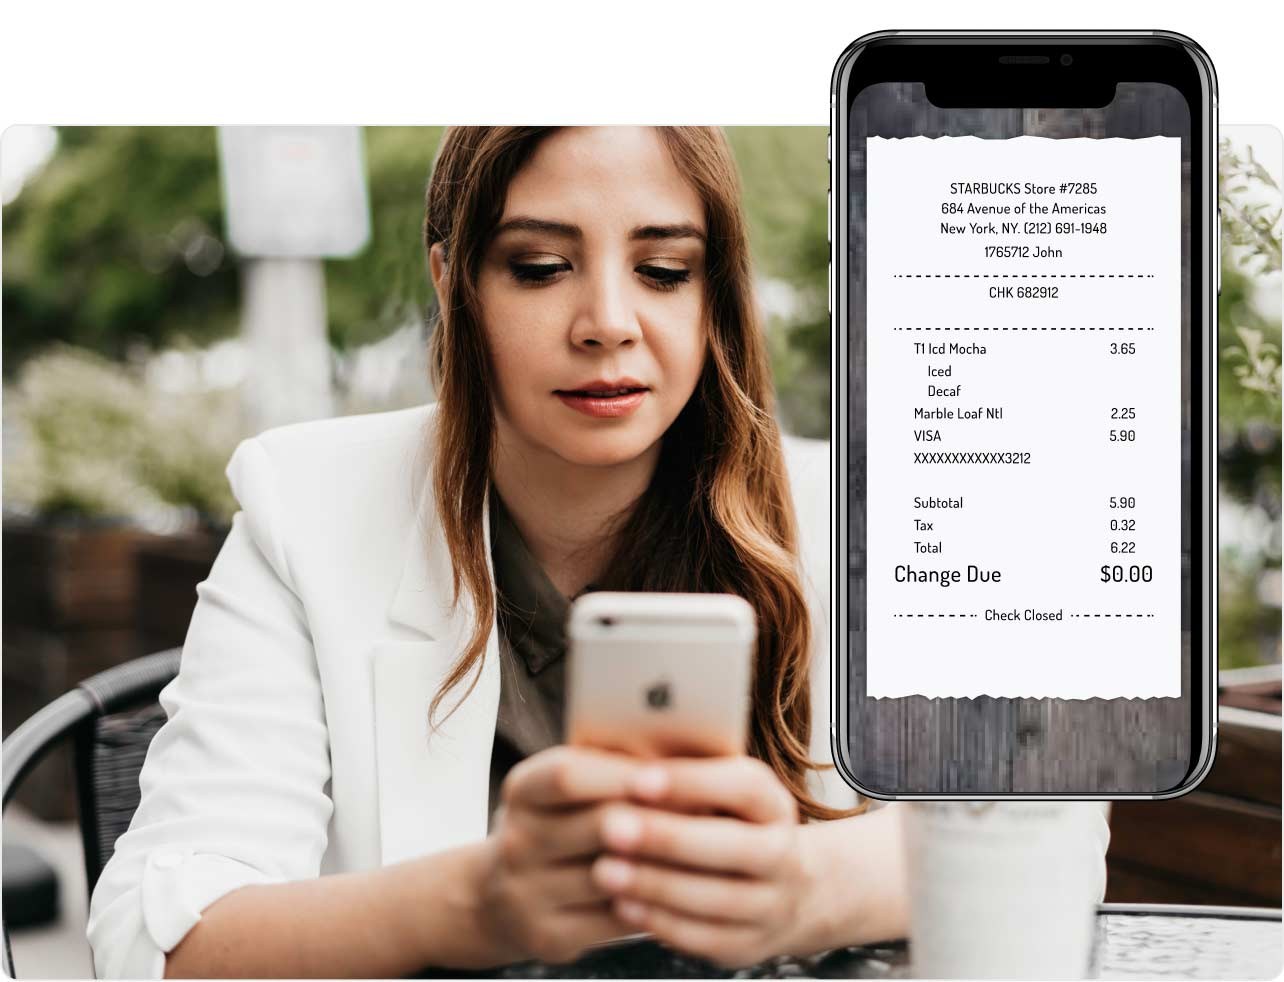 Add a receipt to a physical card transaction when prompted.